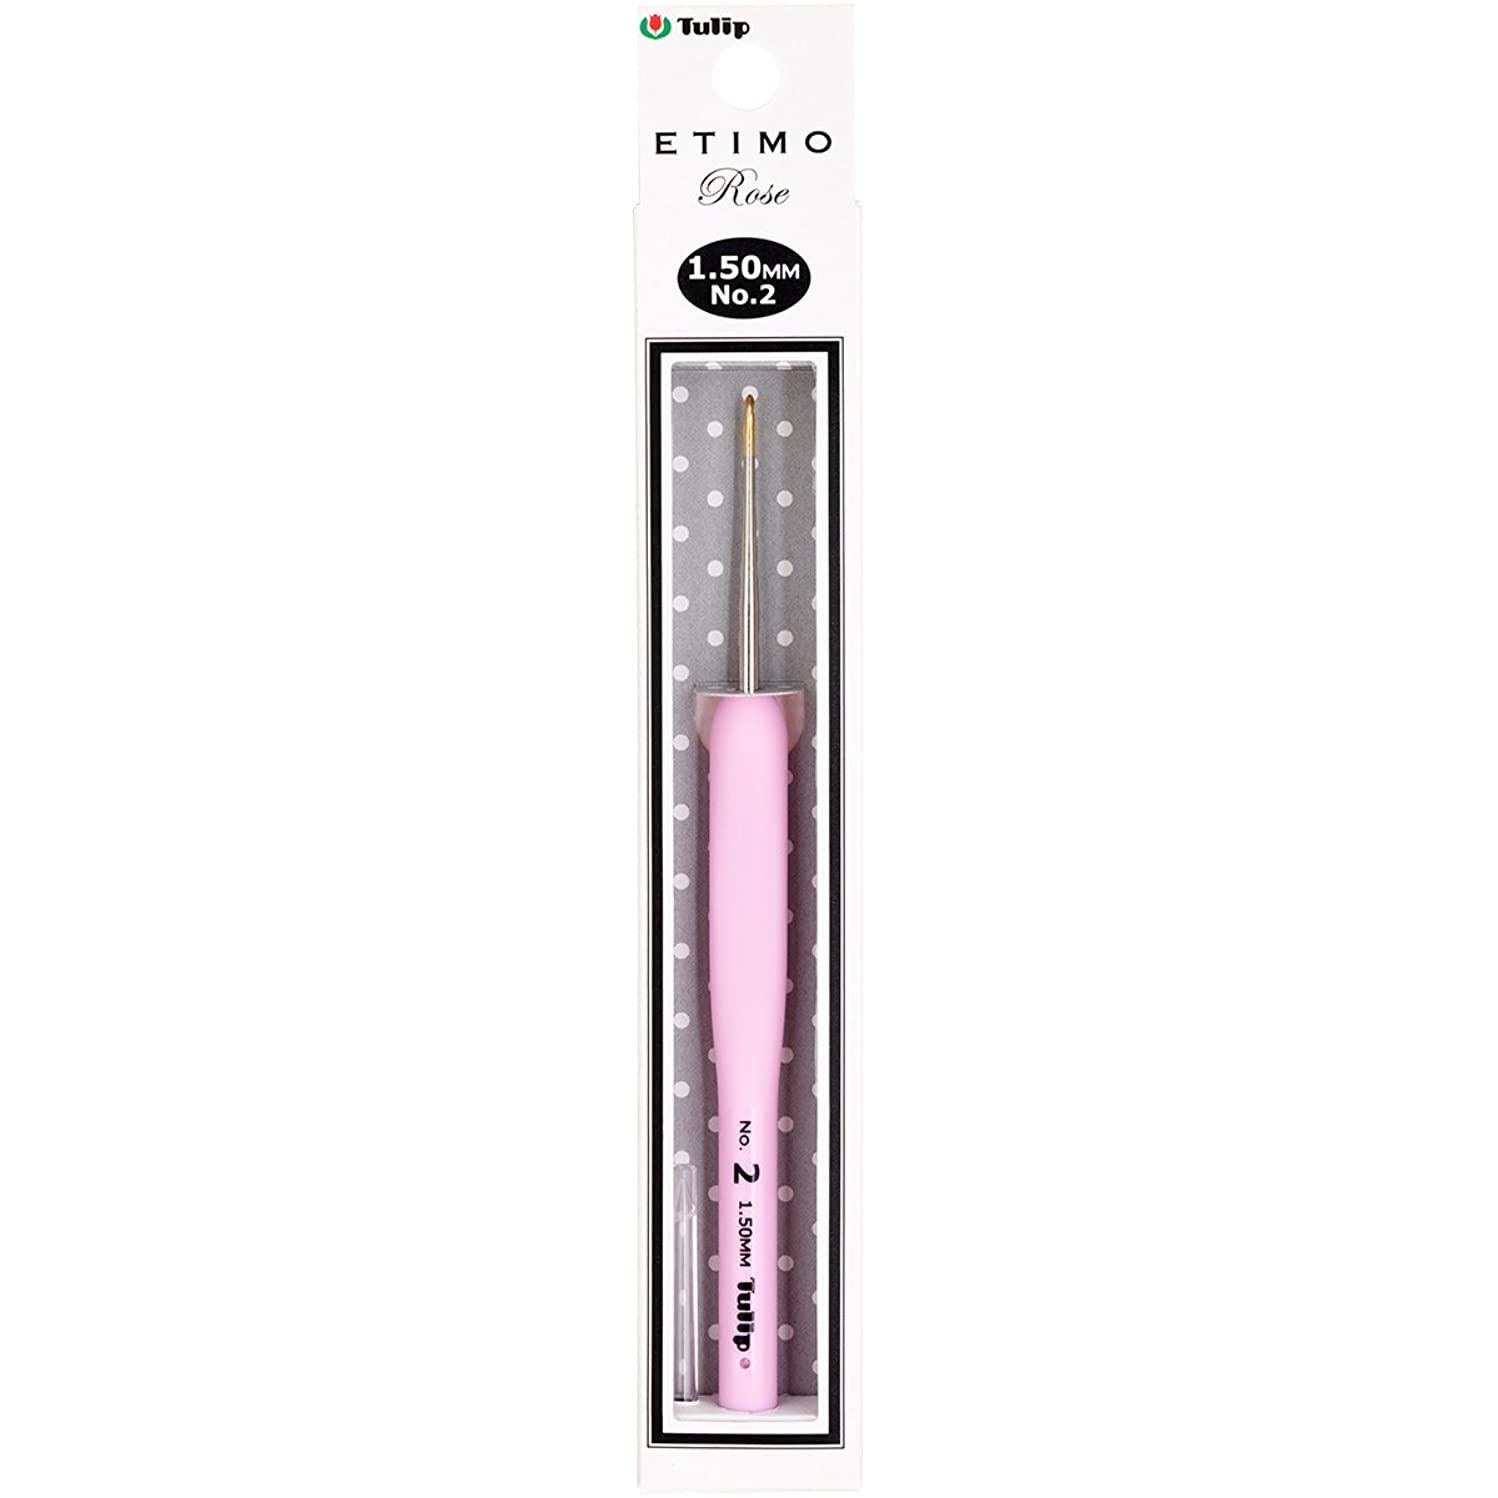 Tulip Needle Company TEL-02E Etimo Rose Steel Crochet Hook-Size 2/1.5mm